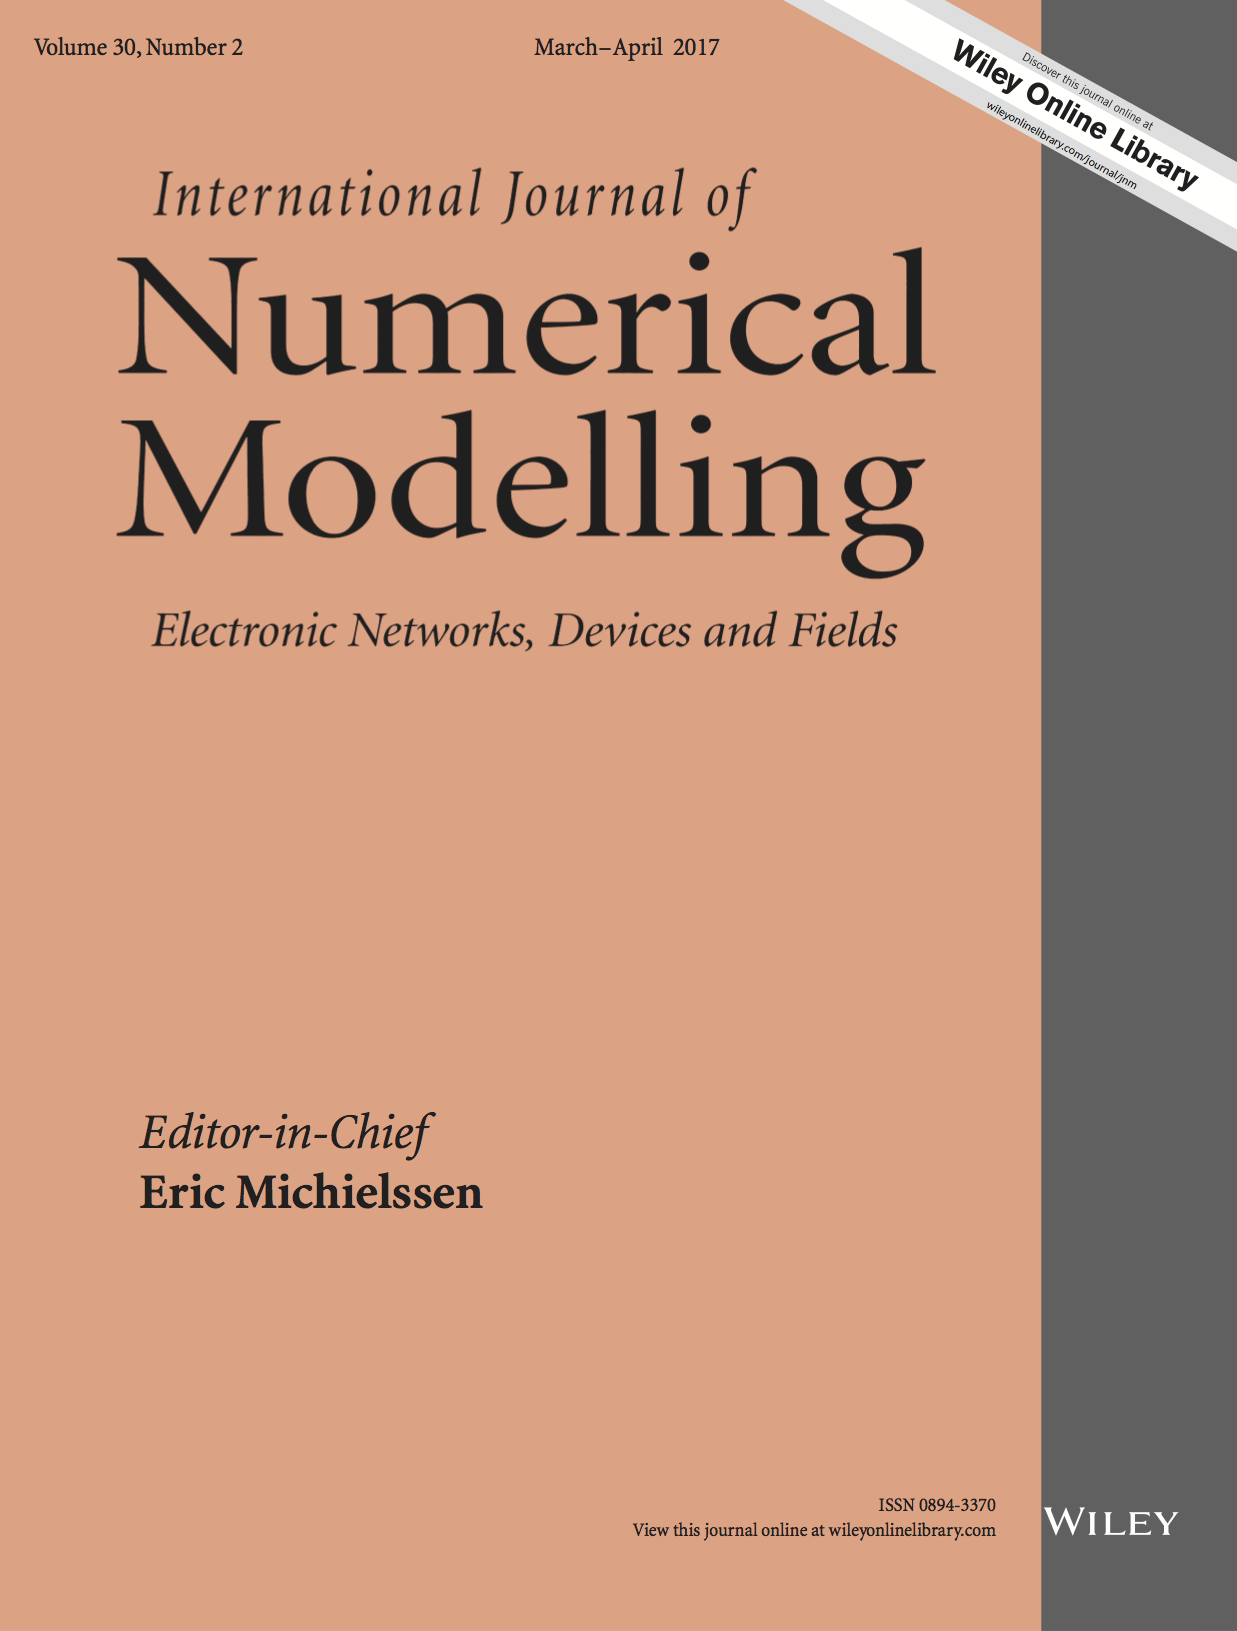 Template for submissions to International Journal of Numerical Modelling: Electronic Networks, Devices and Fields